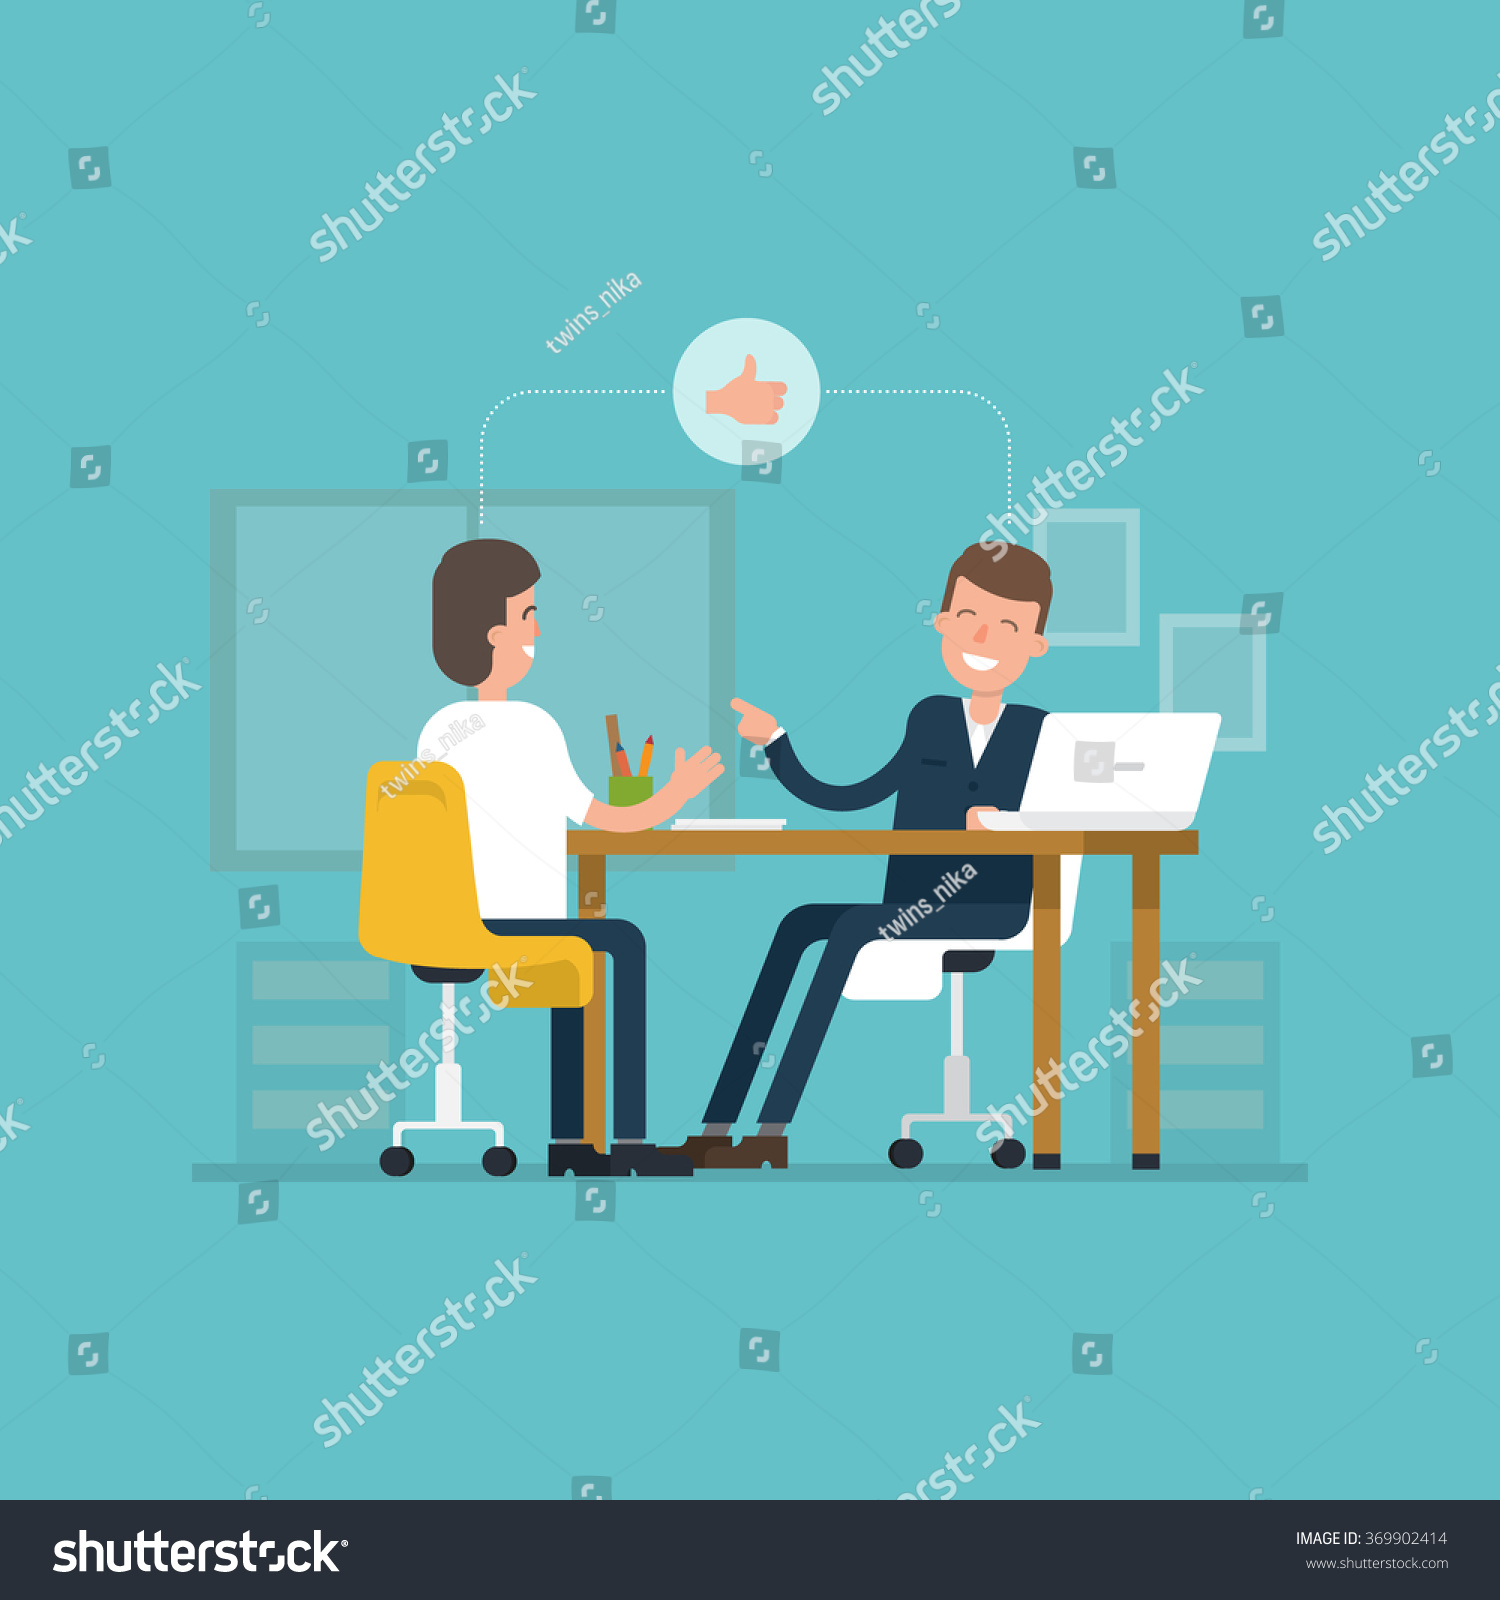 vector concept interviews by the candidate in flat style save to a lightbox